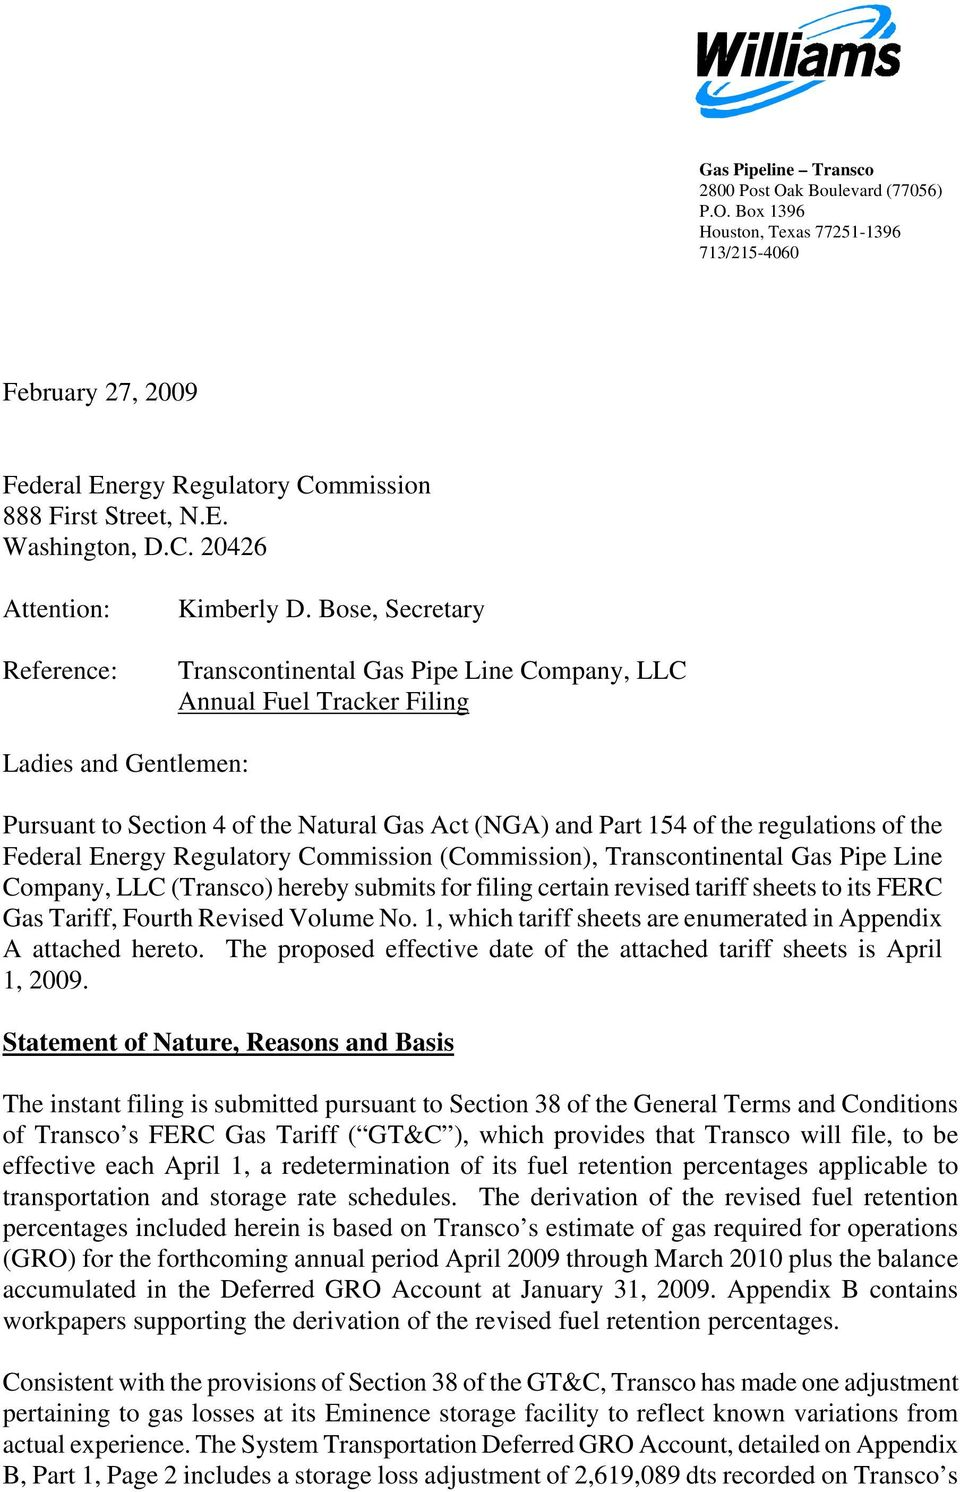 Federal Energy Regulatory Commission (Commission), Transcontinental Gas Pipe Line Company, LLC (Transco) hereby submits for filing certain revised tariff sheets to its FERC Gas Tariff, Fourth Revised